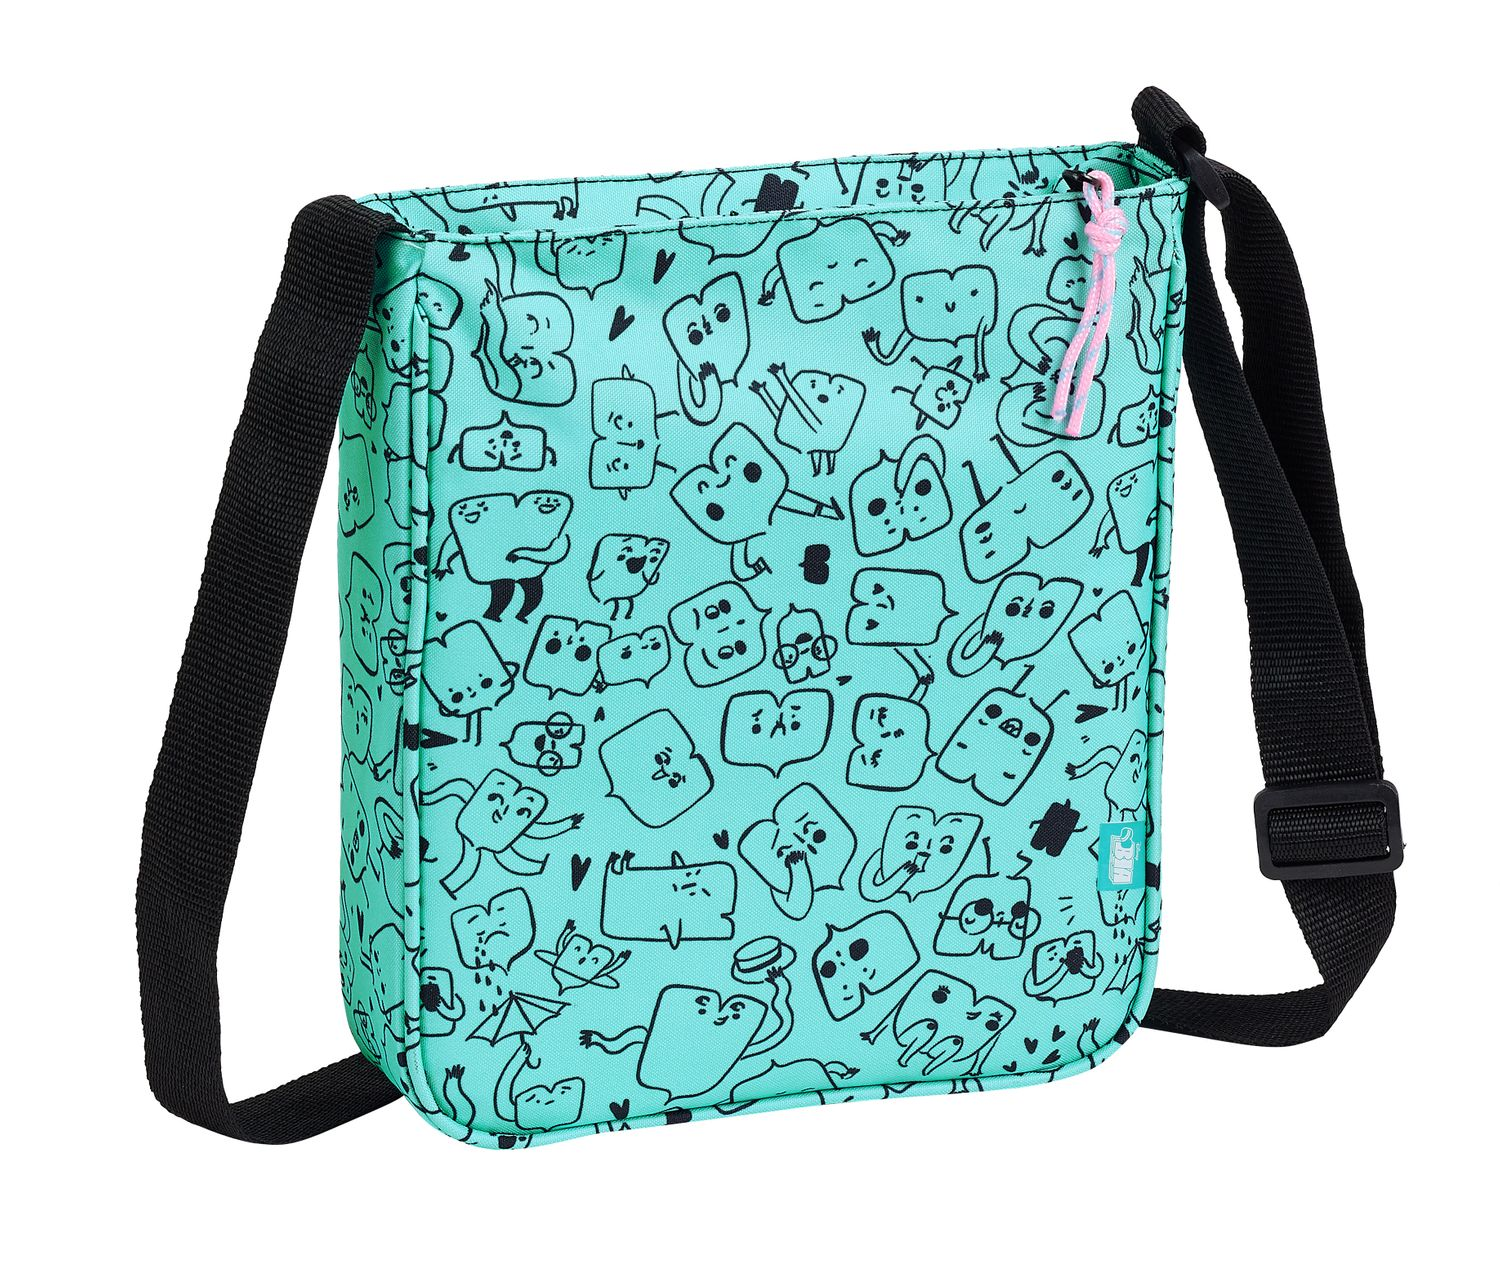 Disney BIA Shoulder Bag 21cm – image 2